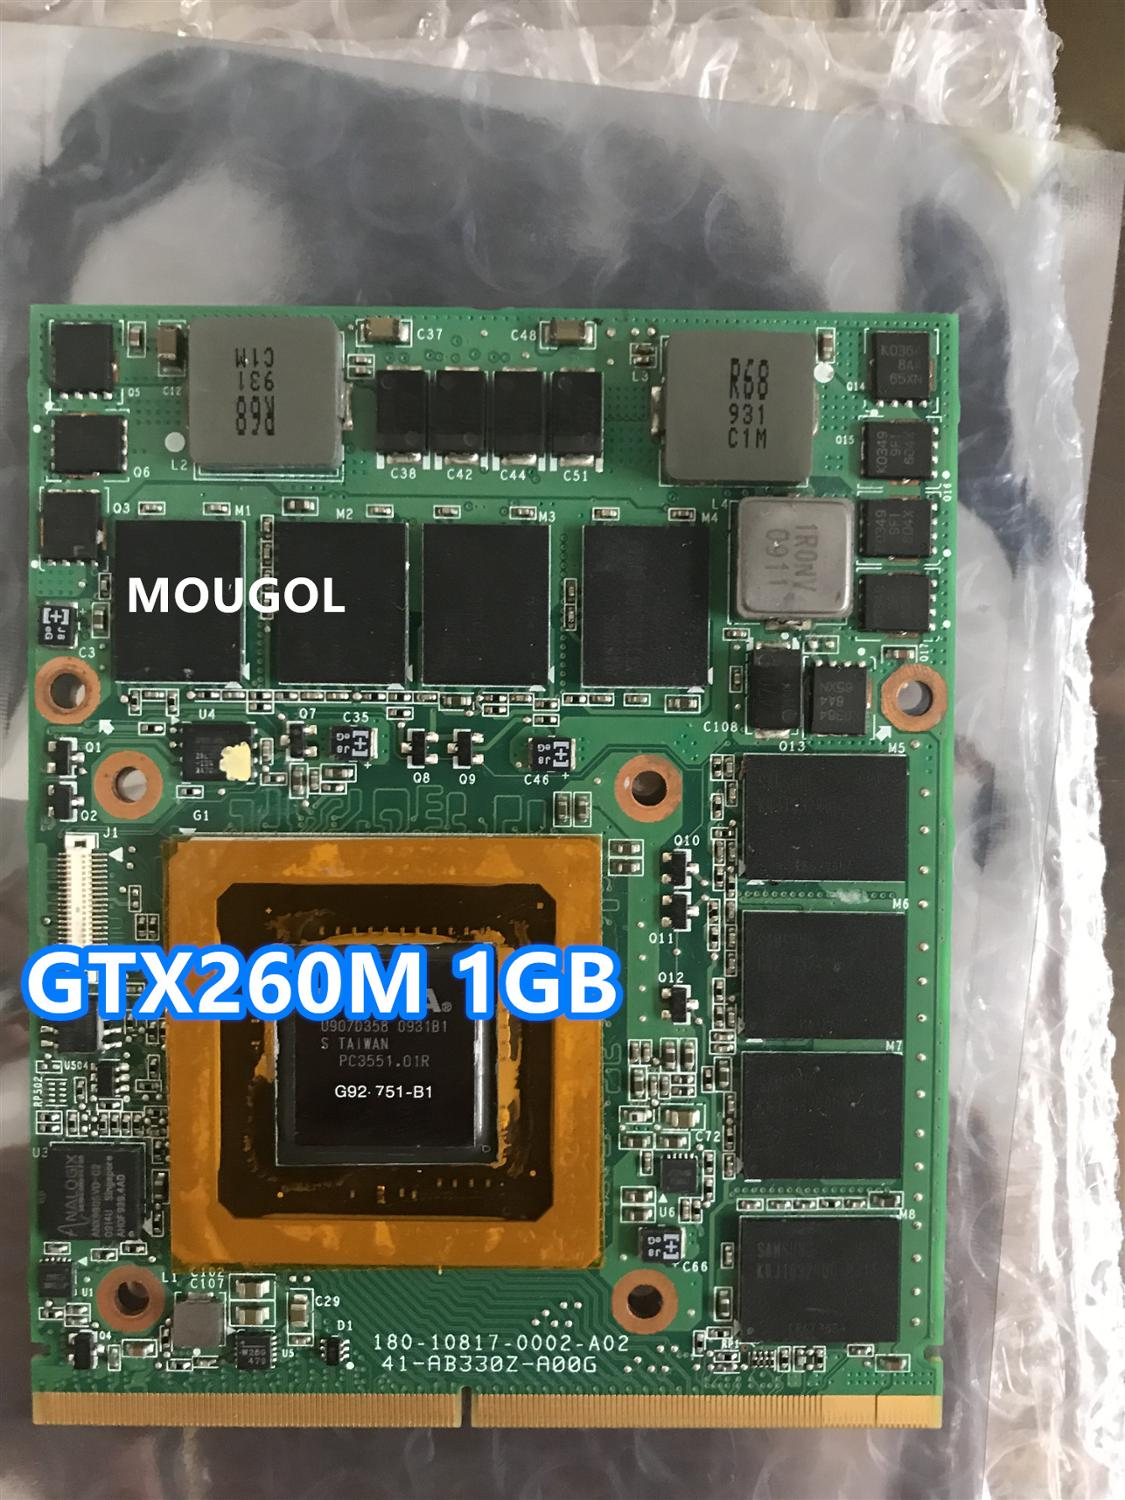 GTX 260M GTX260M G92-751-B1 VGA Video Graphic Card DDR5 WDXVH P/N: 0WDXVH 96RJ4 for Dell <font><b>Alienware</b></font> M15x <font><b>M17x</b></font> <font><b>R1</b></font> Fully test image